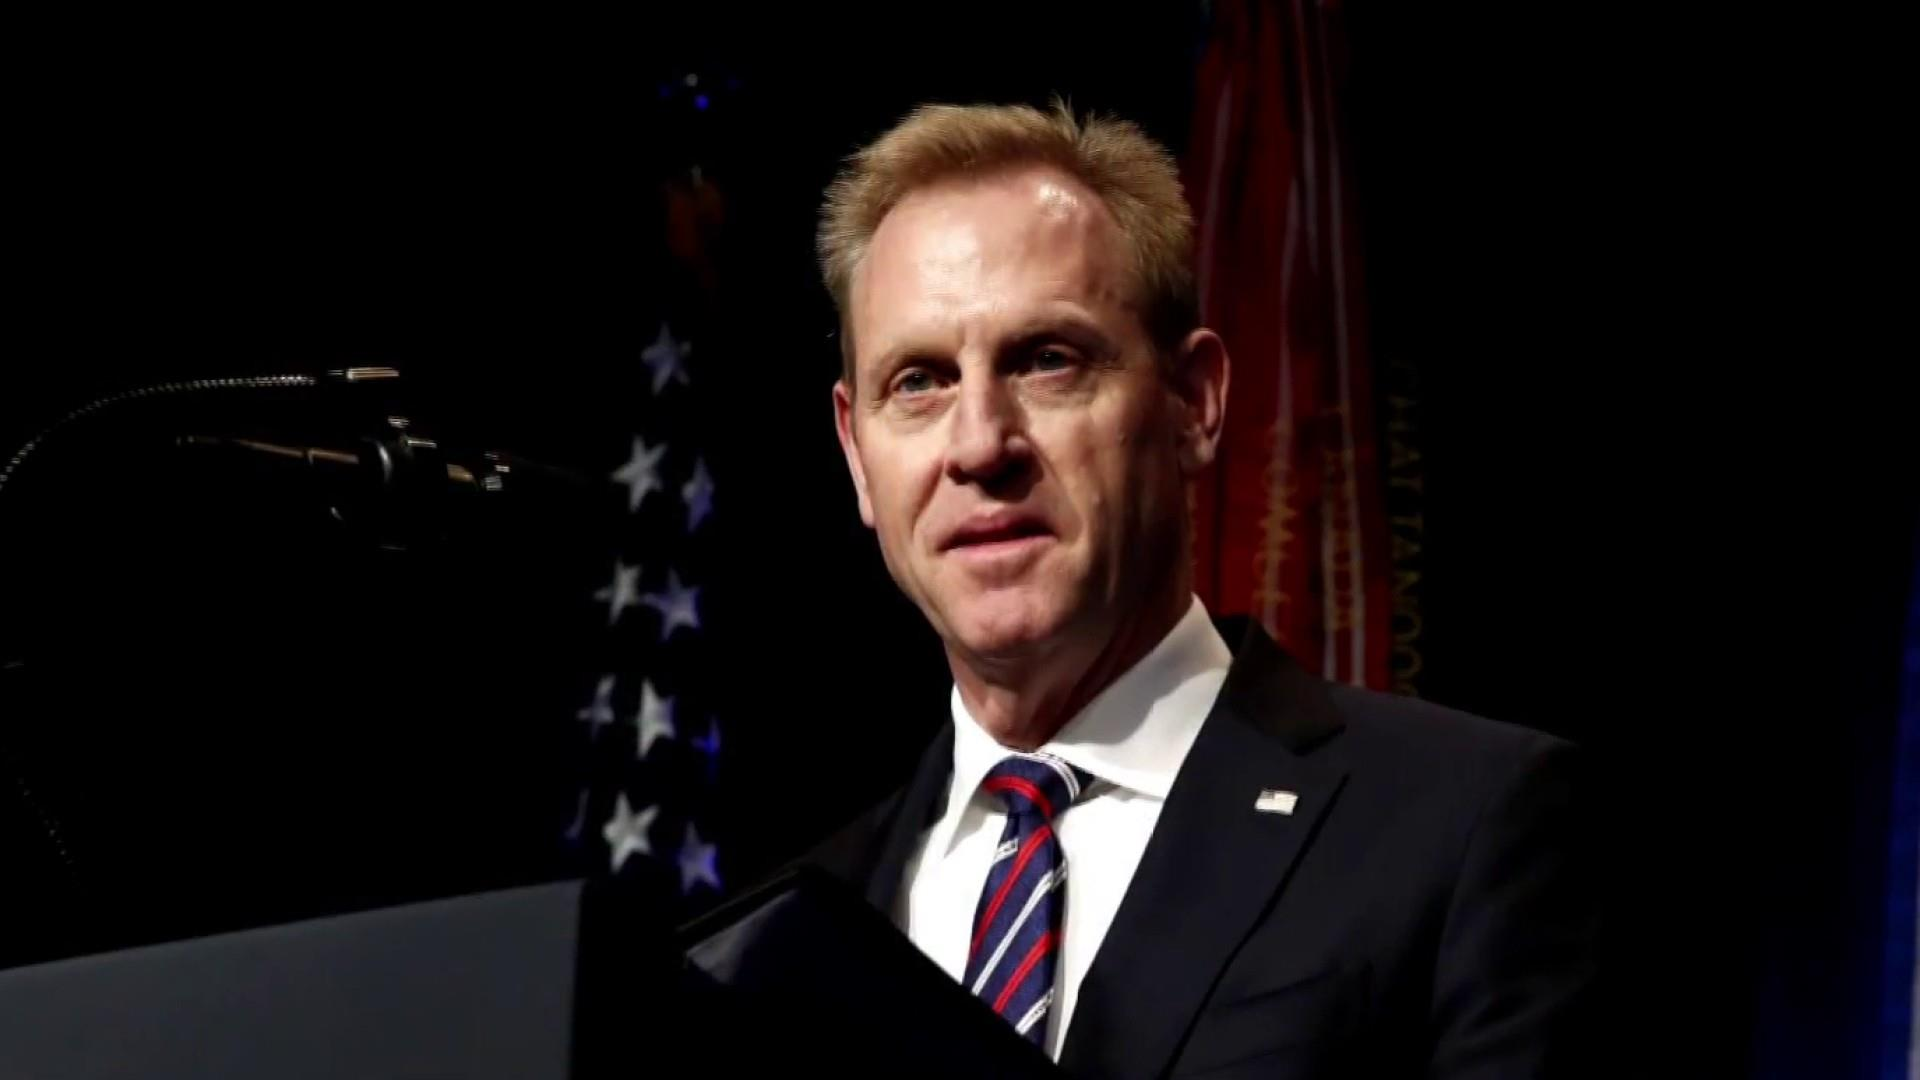 Trump speaks out about the sudden departure of Acting Defense Sec. Patrick Shanahan